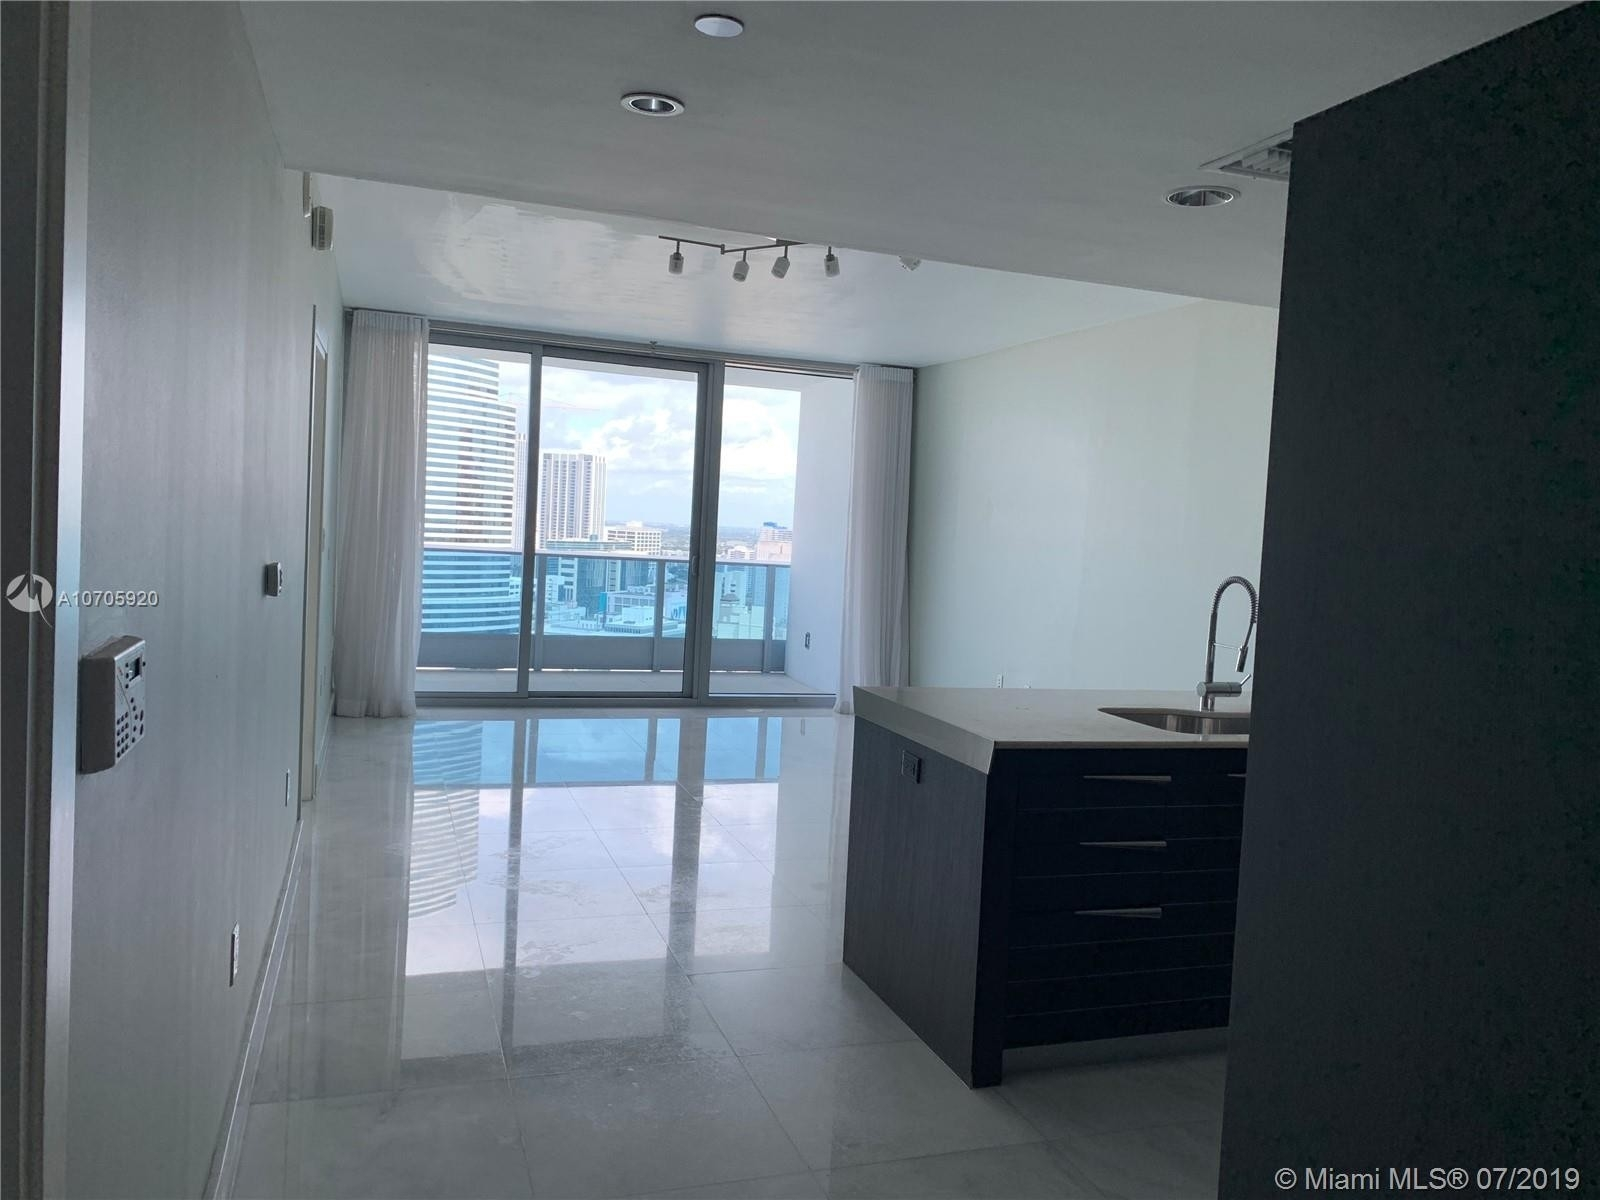 Condominium pour l Vente à 200 Biscayne blvd way , 3114 Miami Central Business District, Miami, FL 33131